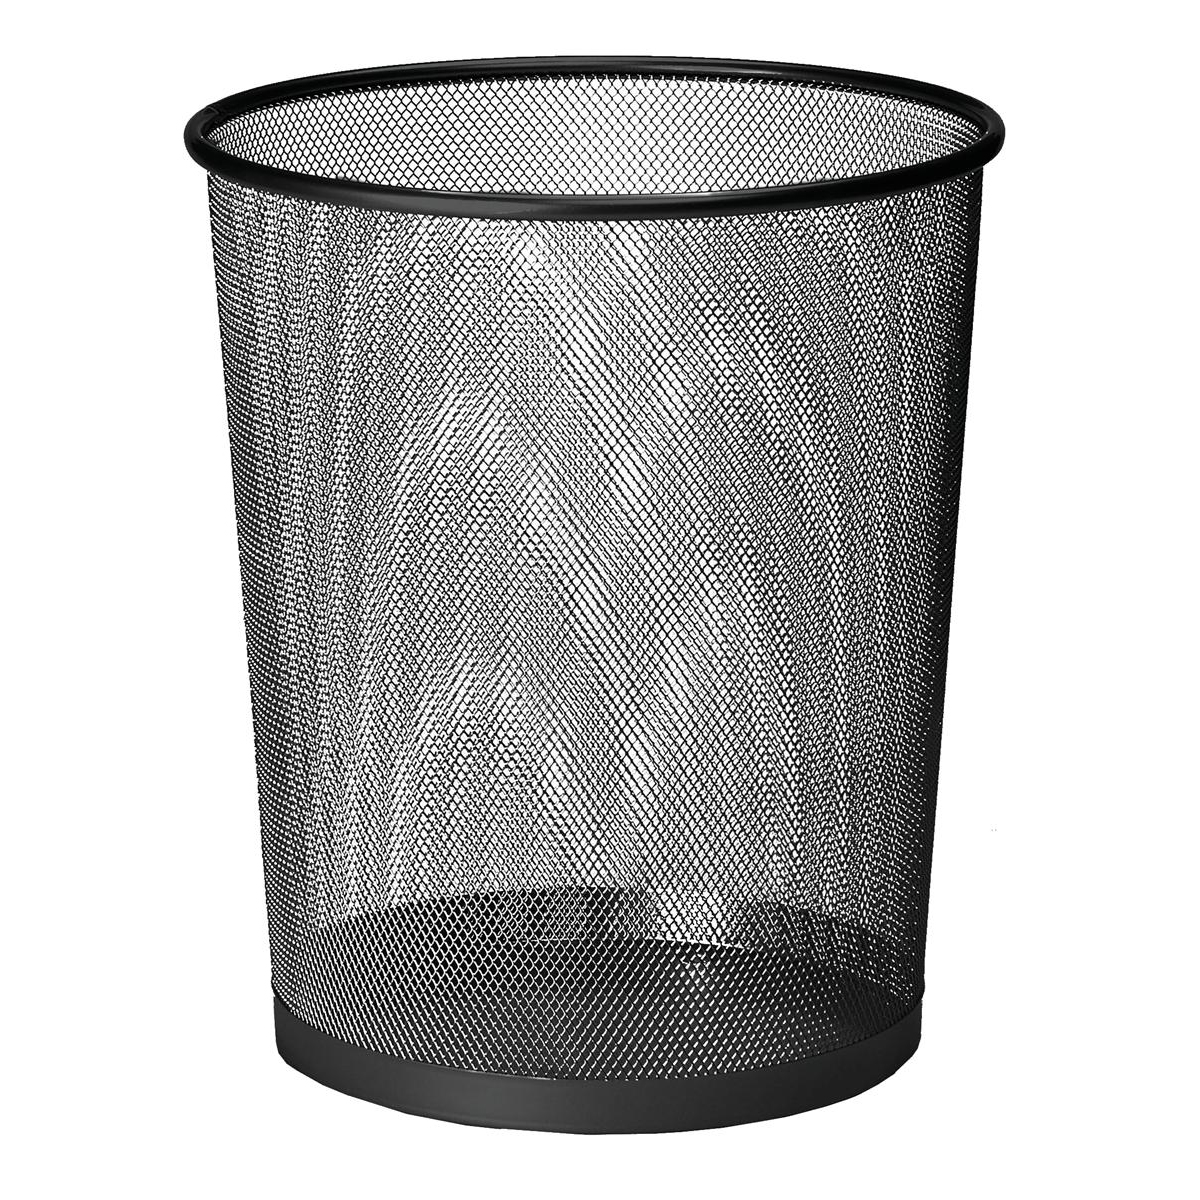 Business Mesh Waste Bin Lightweight Sturdy Scratch Resistant W275xH350mm Black